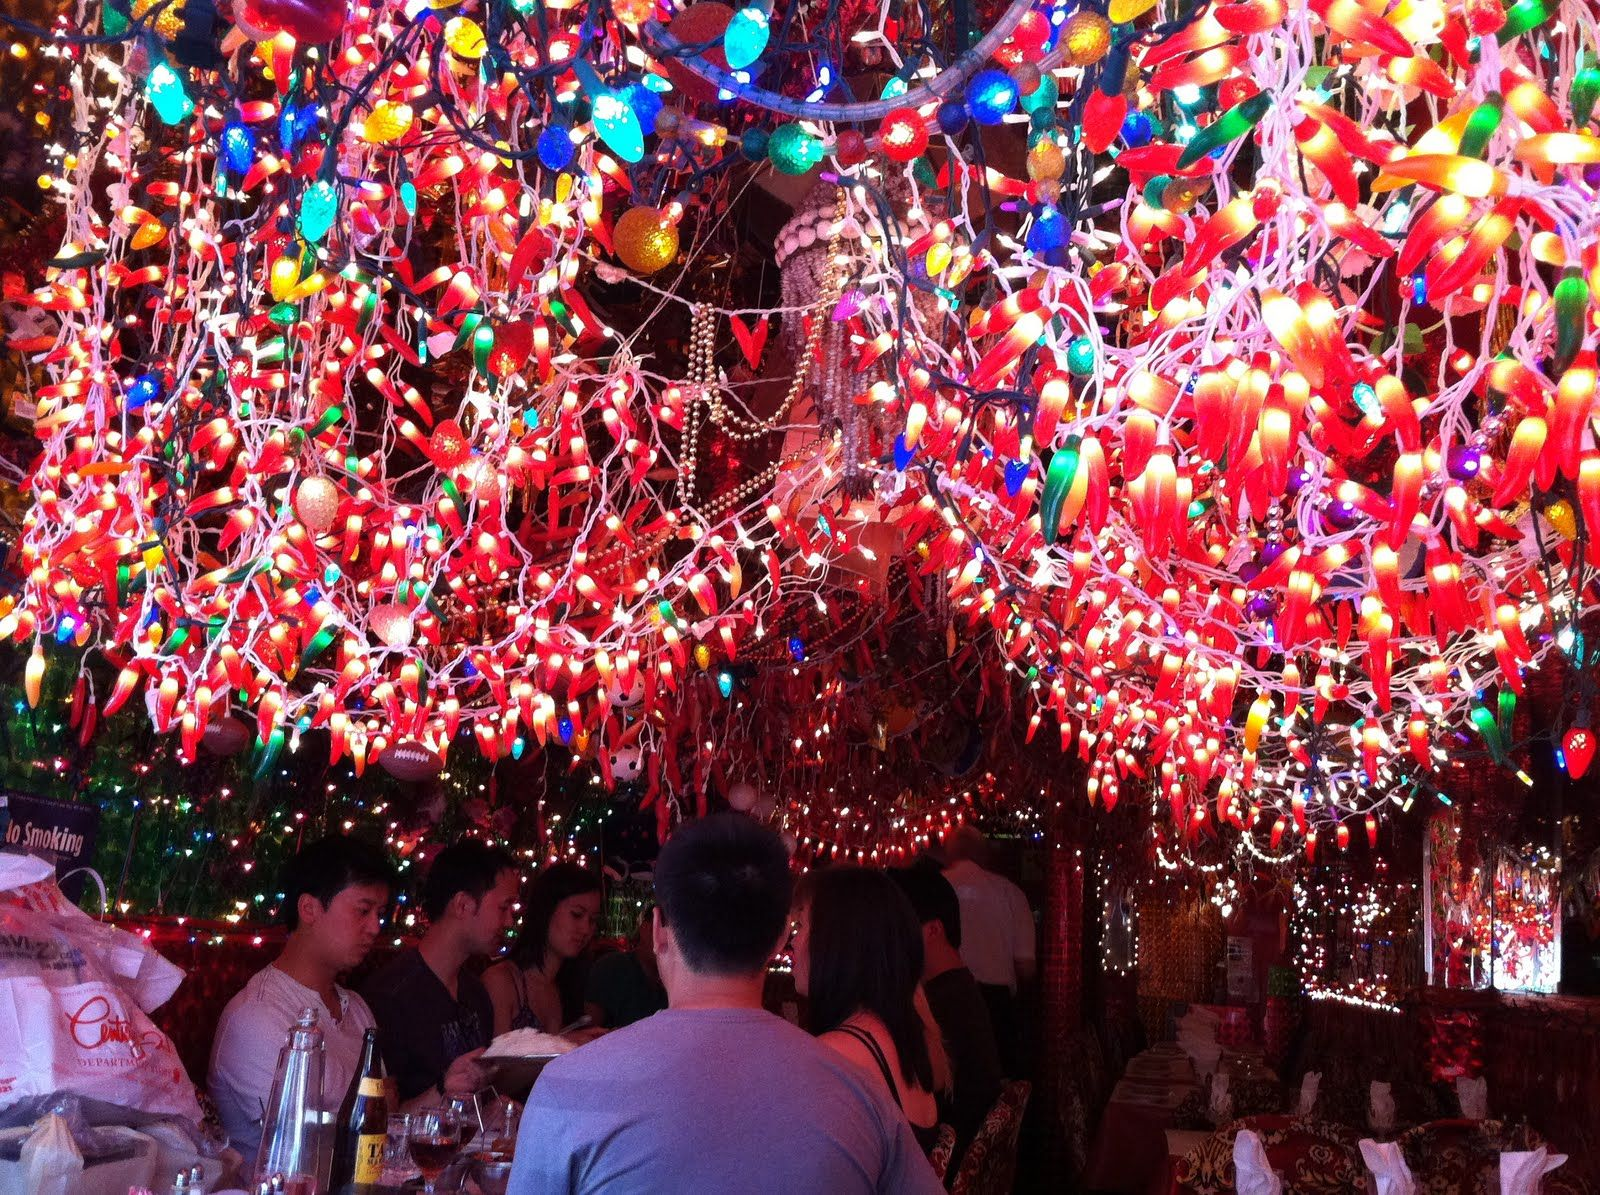 Find Chili Pepper Lights Like These Found At Panna Ii Garden Indian Restaurant Nyc On